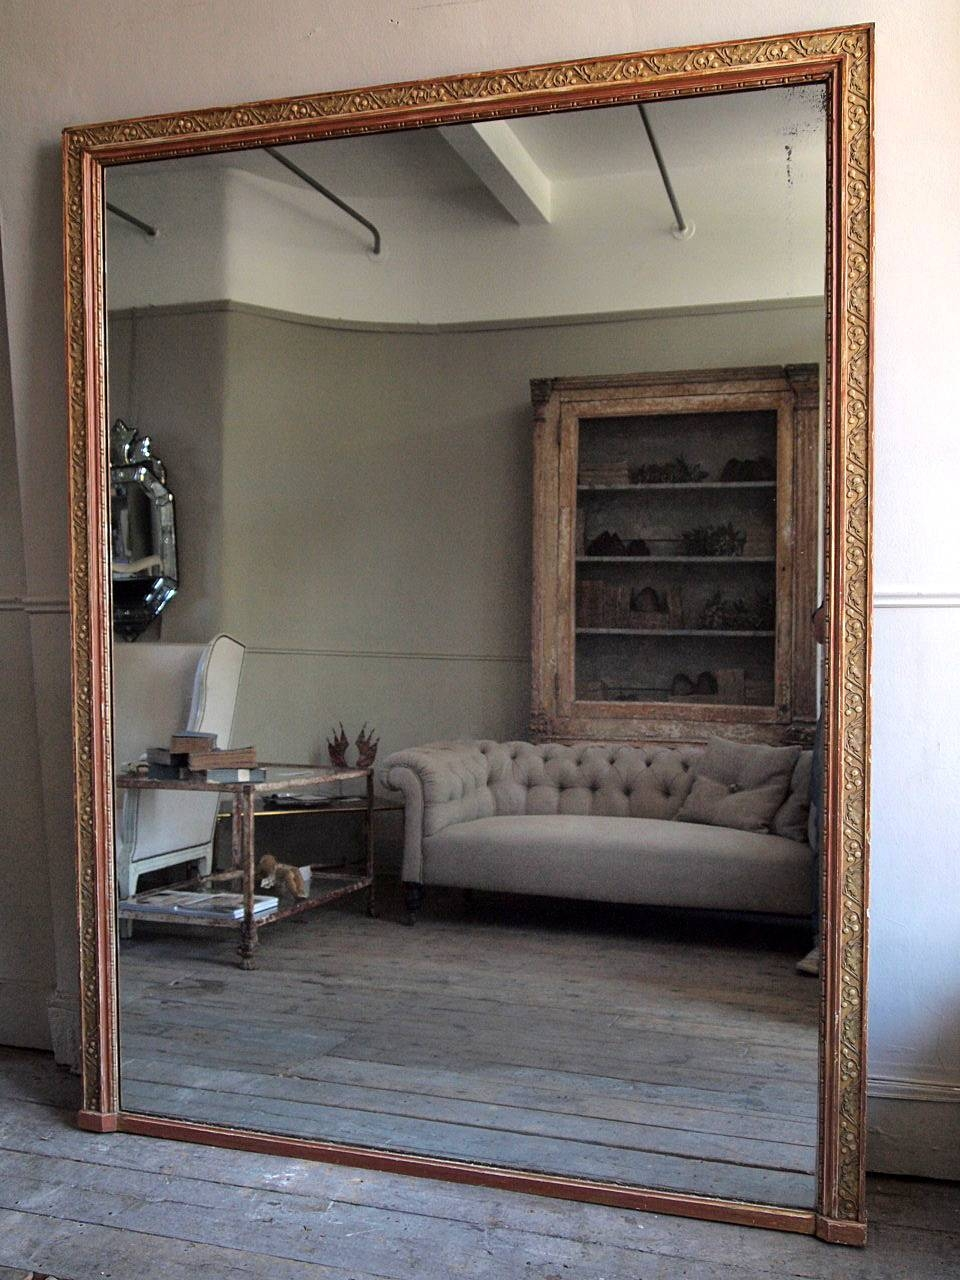 Huge Antique Mirror › Puckhaber Decorative Antiques › Specialists intended for Huge Antique Mirrors (Image 7 of 15)